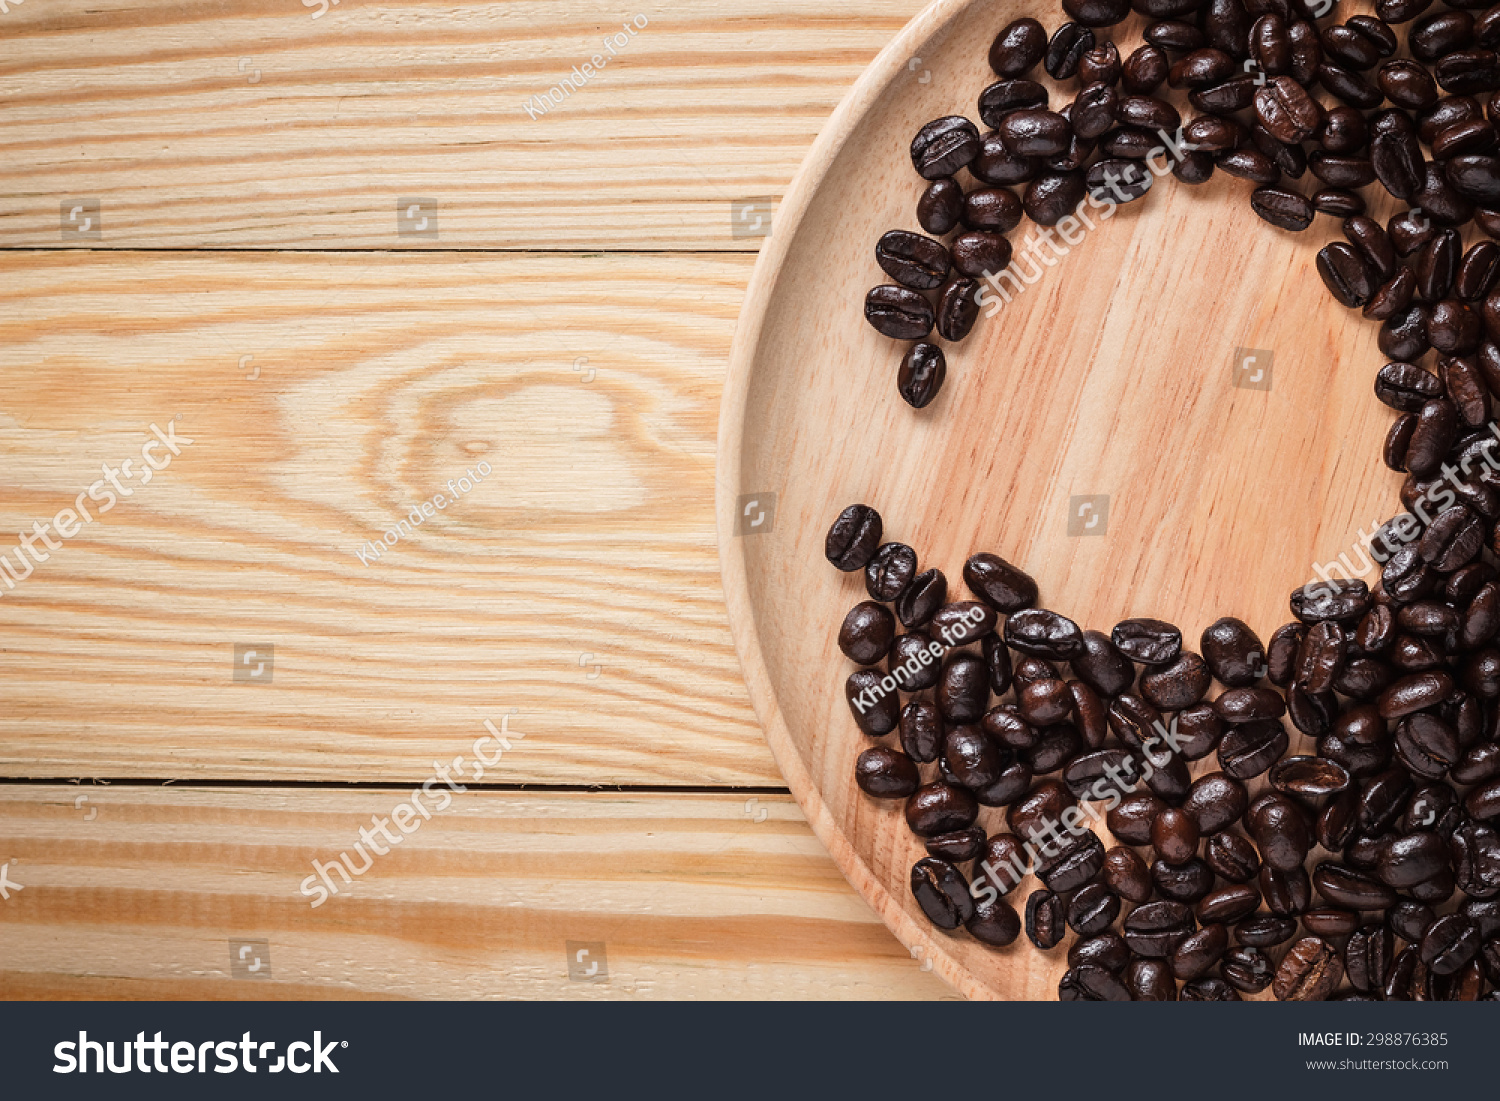 Top view Coffee bean were placed on a wooden plate